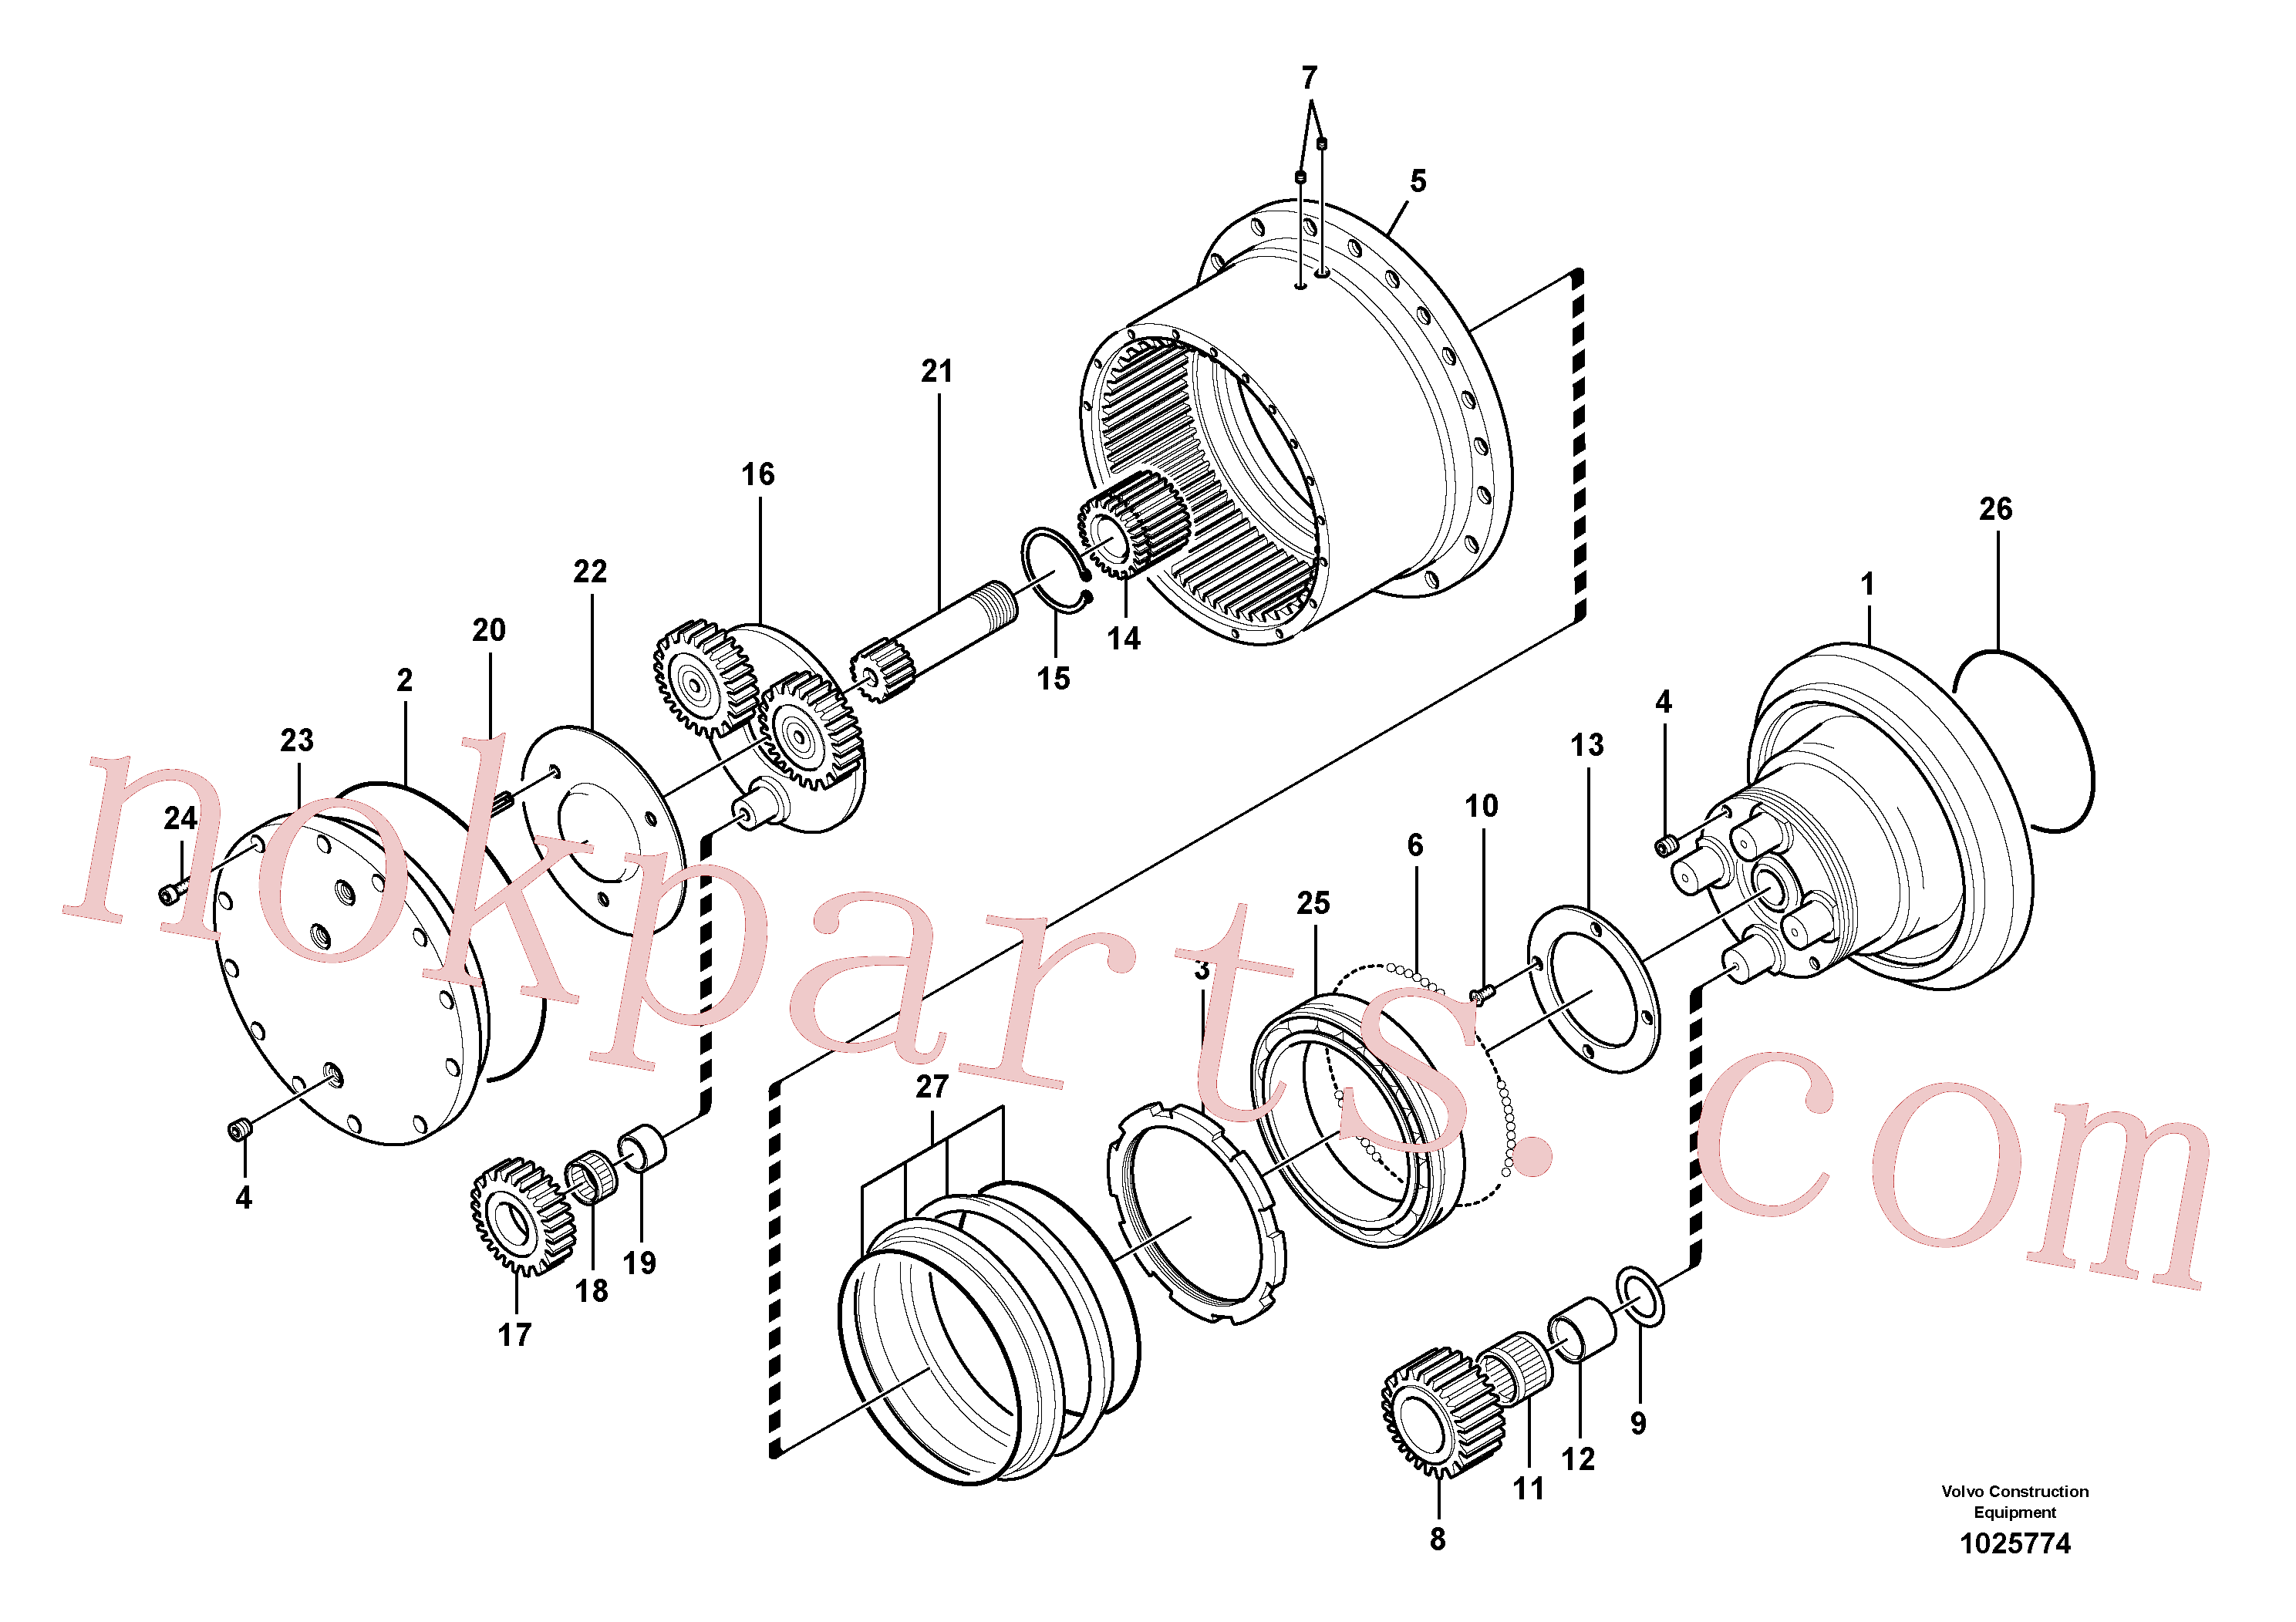 SA9016-10804 for Volvo Travel gearbox(1025774 assembly)